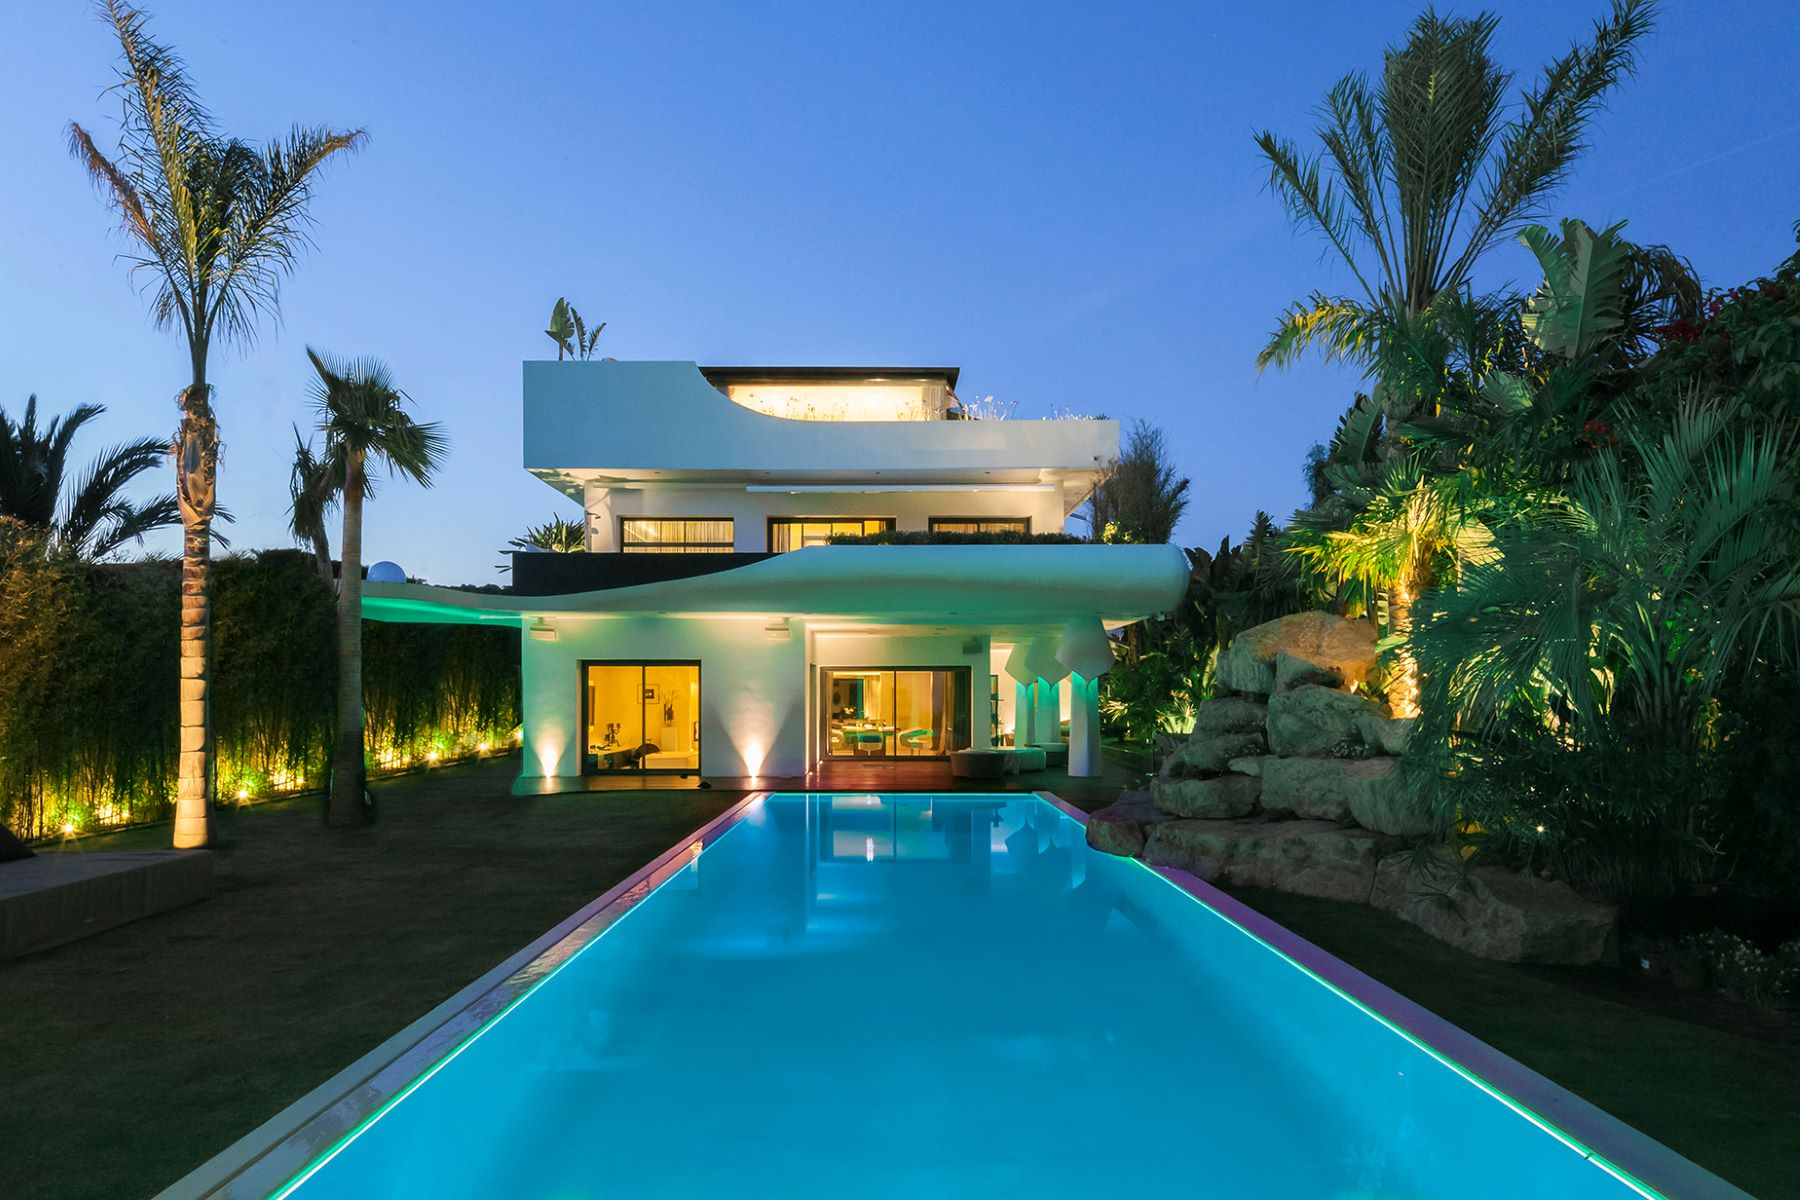 Single Family Home for Sale at Extraordinary villa in Sitges Sitges, Barcelona 08870 Spain